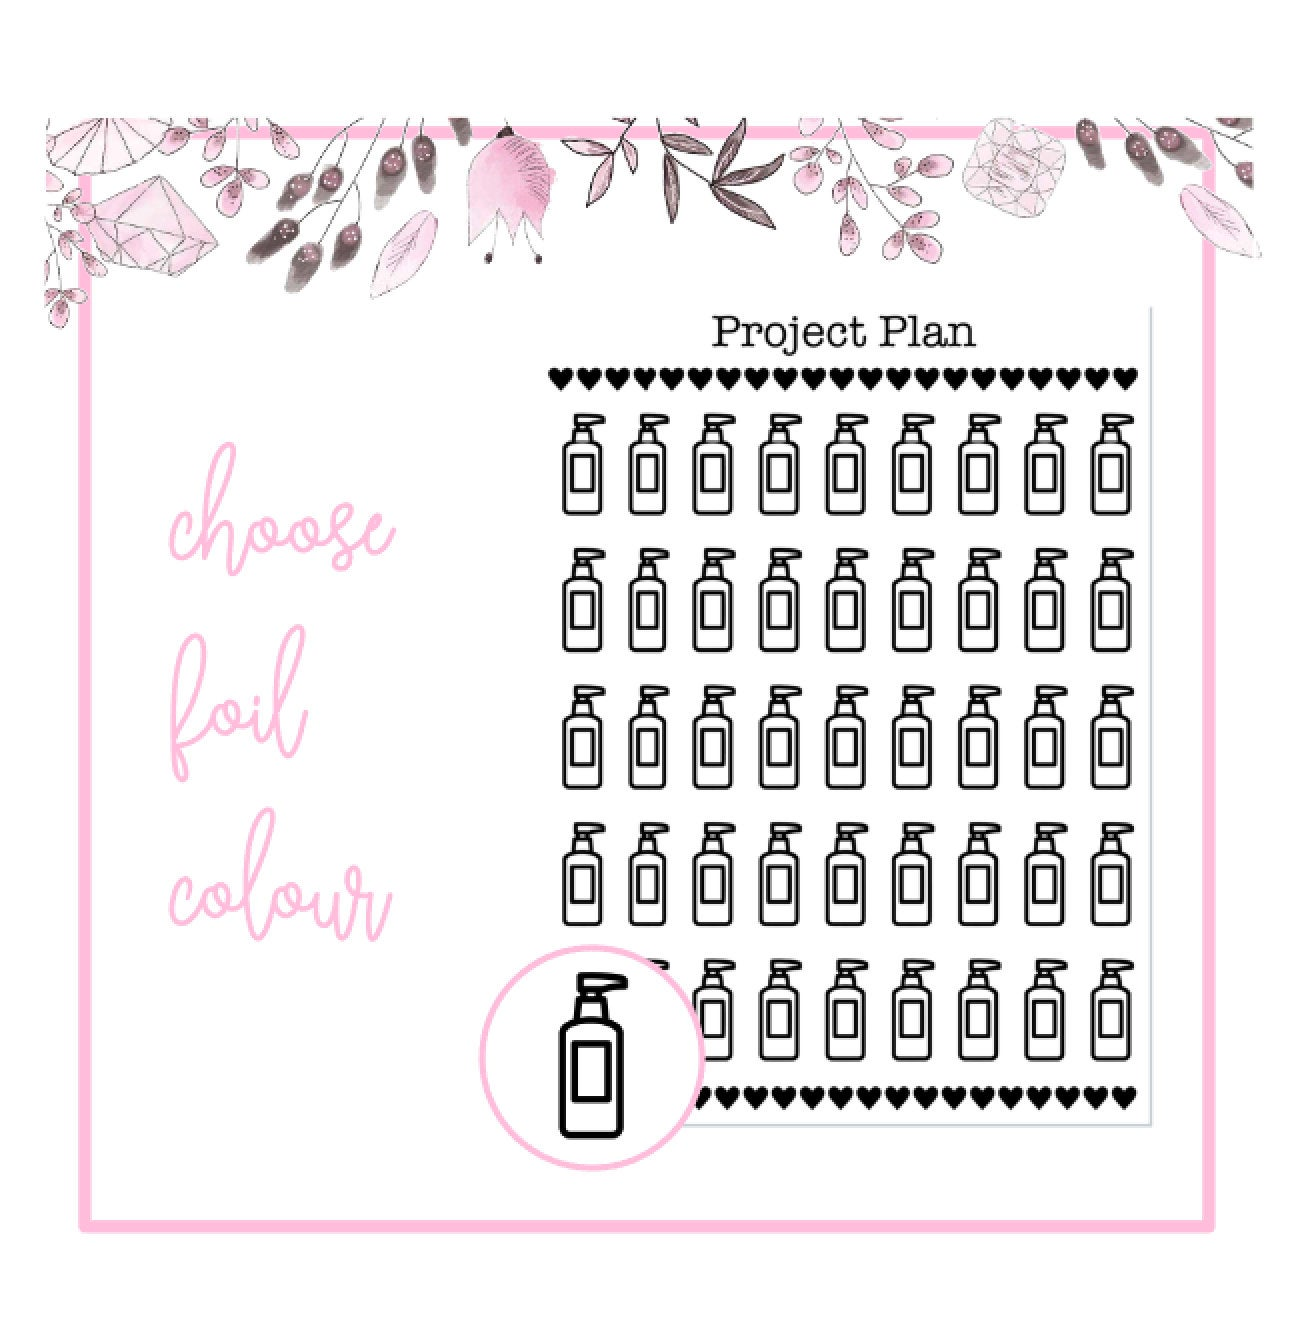 Foil Lotion Icon Planner Stickers | Choose Gold, Rose Gold, or Silver Foil